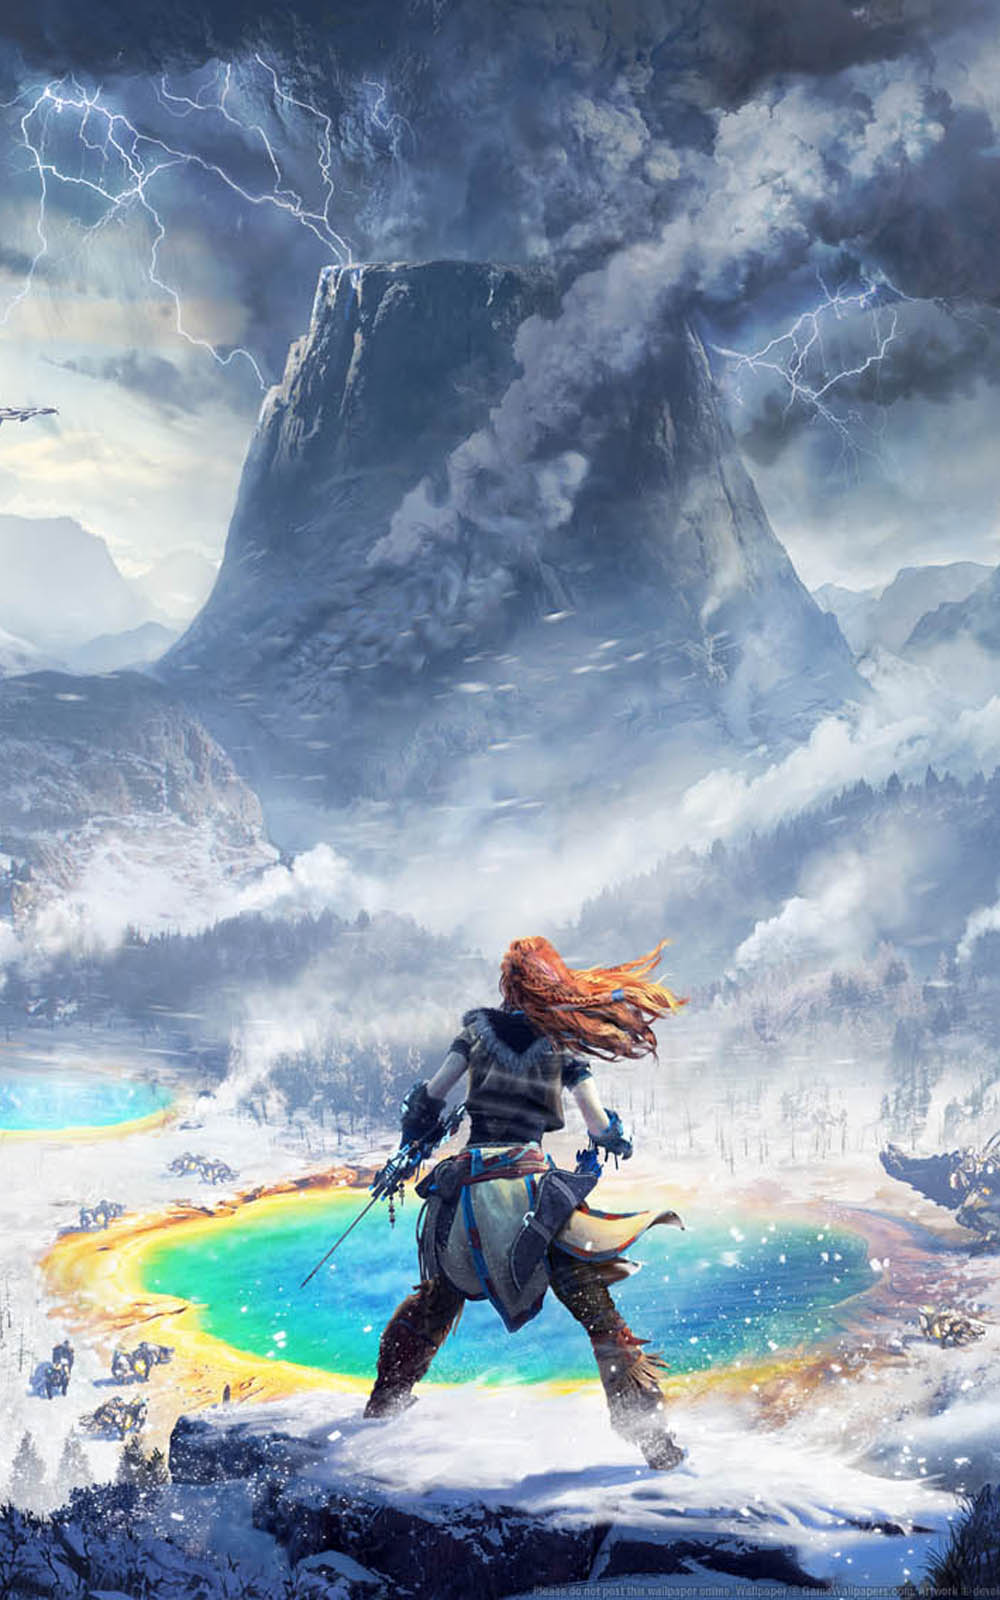 Download horizon zero dawn the frozen wilds free pure 4k - Horizon zero dawn android wallpaper ...